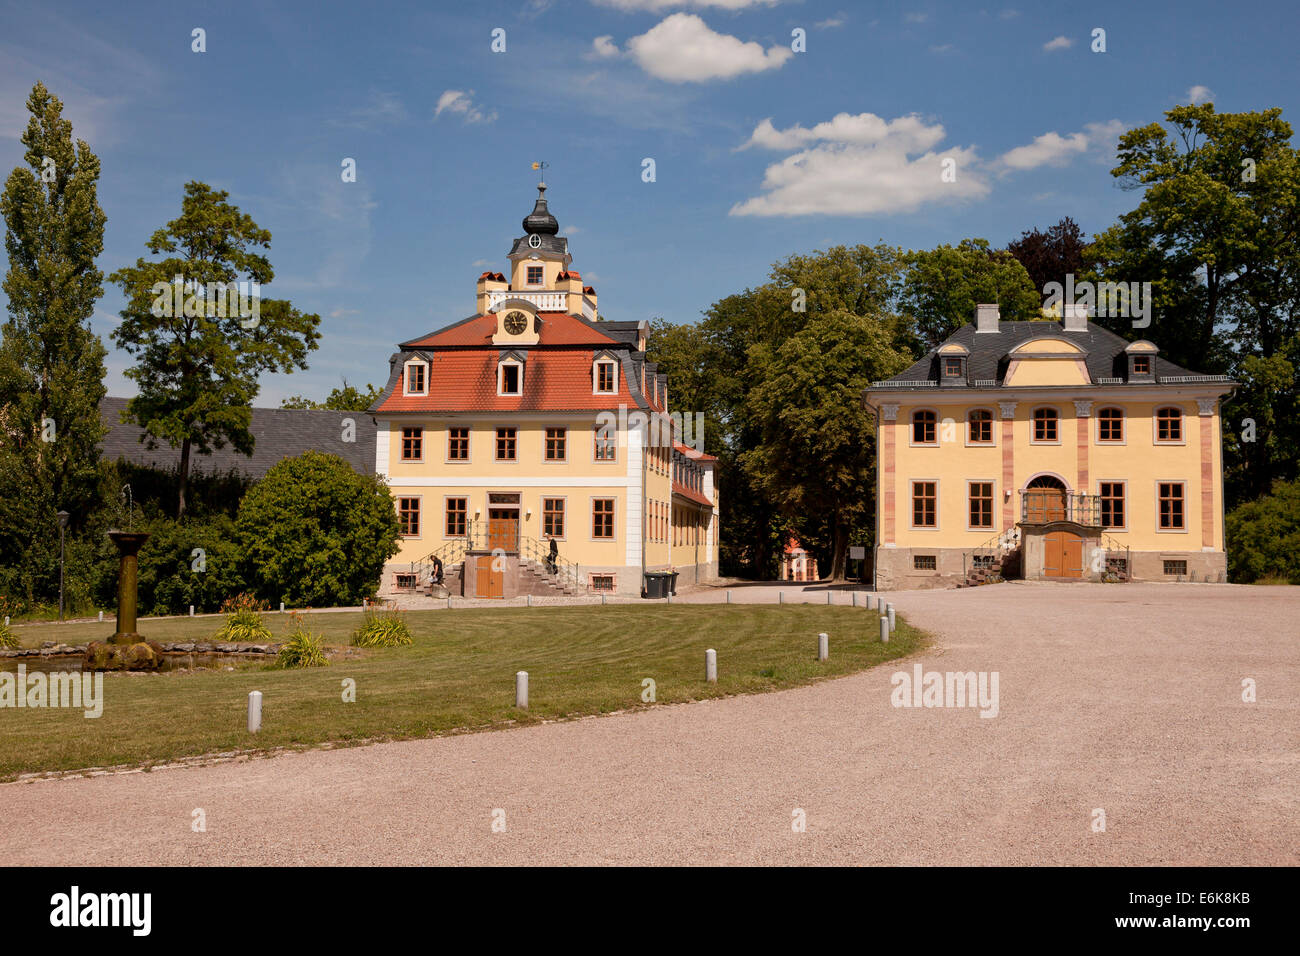 palace Schloss Belvedere, Weimar, Thuringia, Germany, Europe Stock Photo